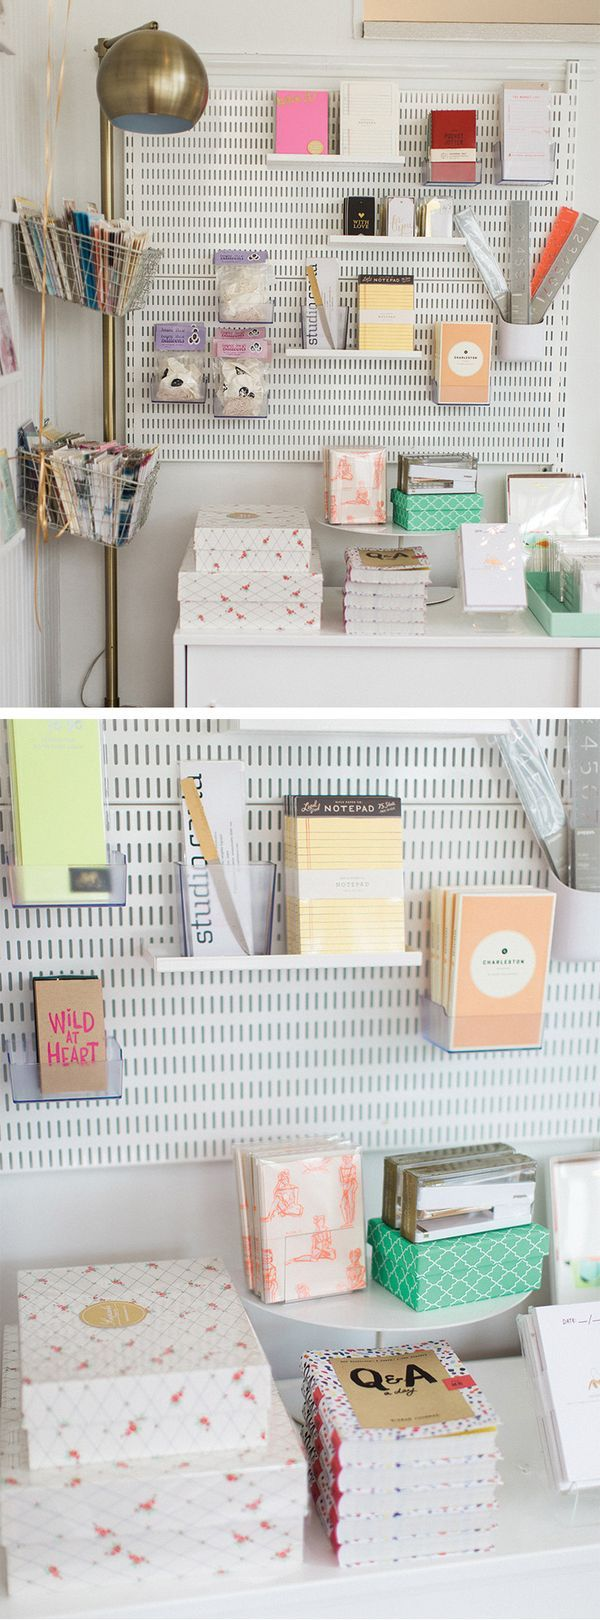 189 Best Elfa Craft Images On Pinterest | Container Store, Craft Rooms And  Craft Space